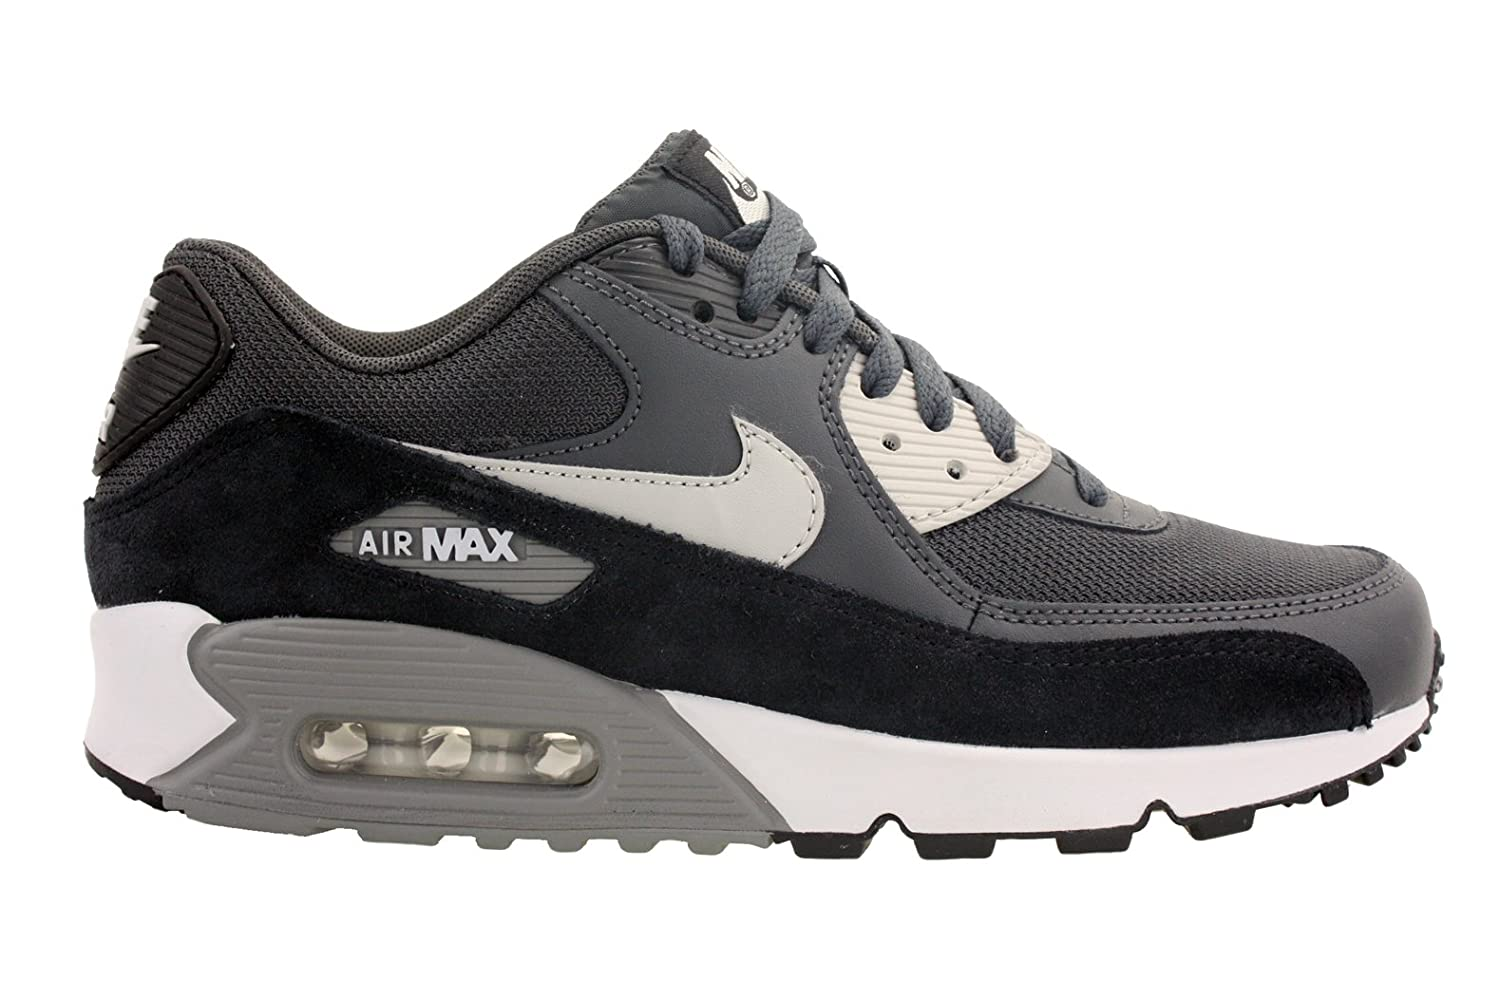 brand new a696c 3bbd9 Amazon.com   Nike Mens Air Max 90 Essential Running Shoes  Anthracite Black Granite 537384-035 Size 15   Shoes